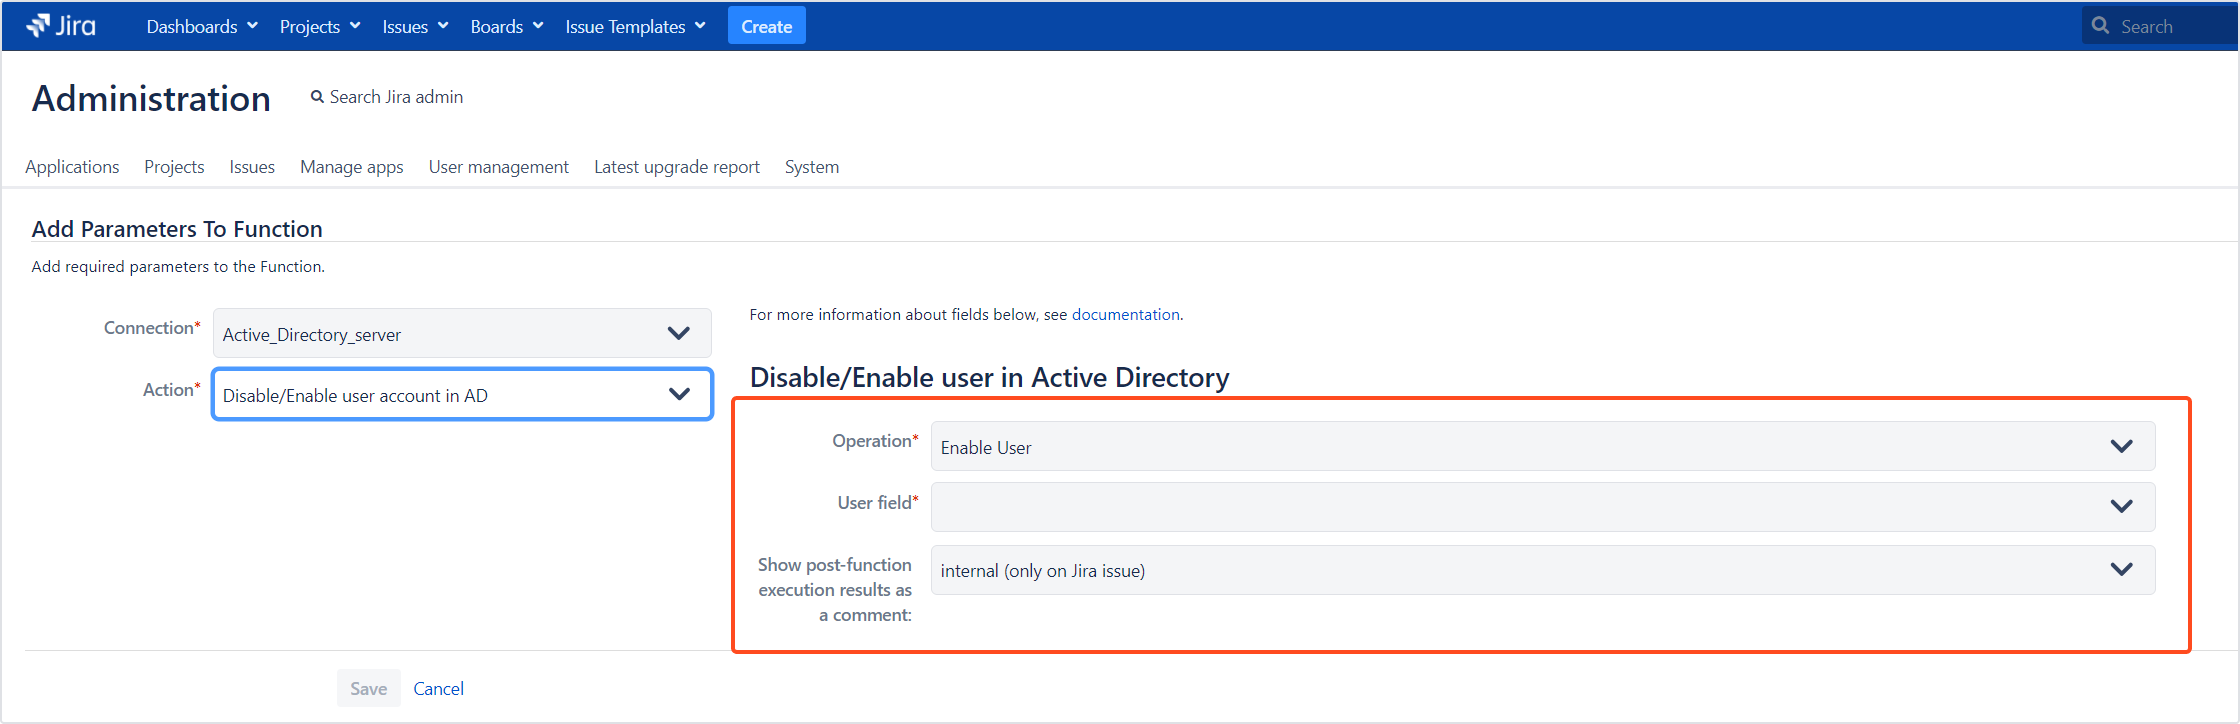 Active Directory Attributes Sync for Jira - Update Data: Disable/enable user account in AD